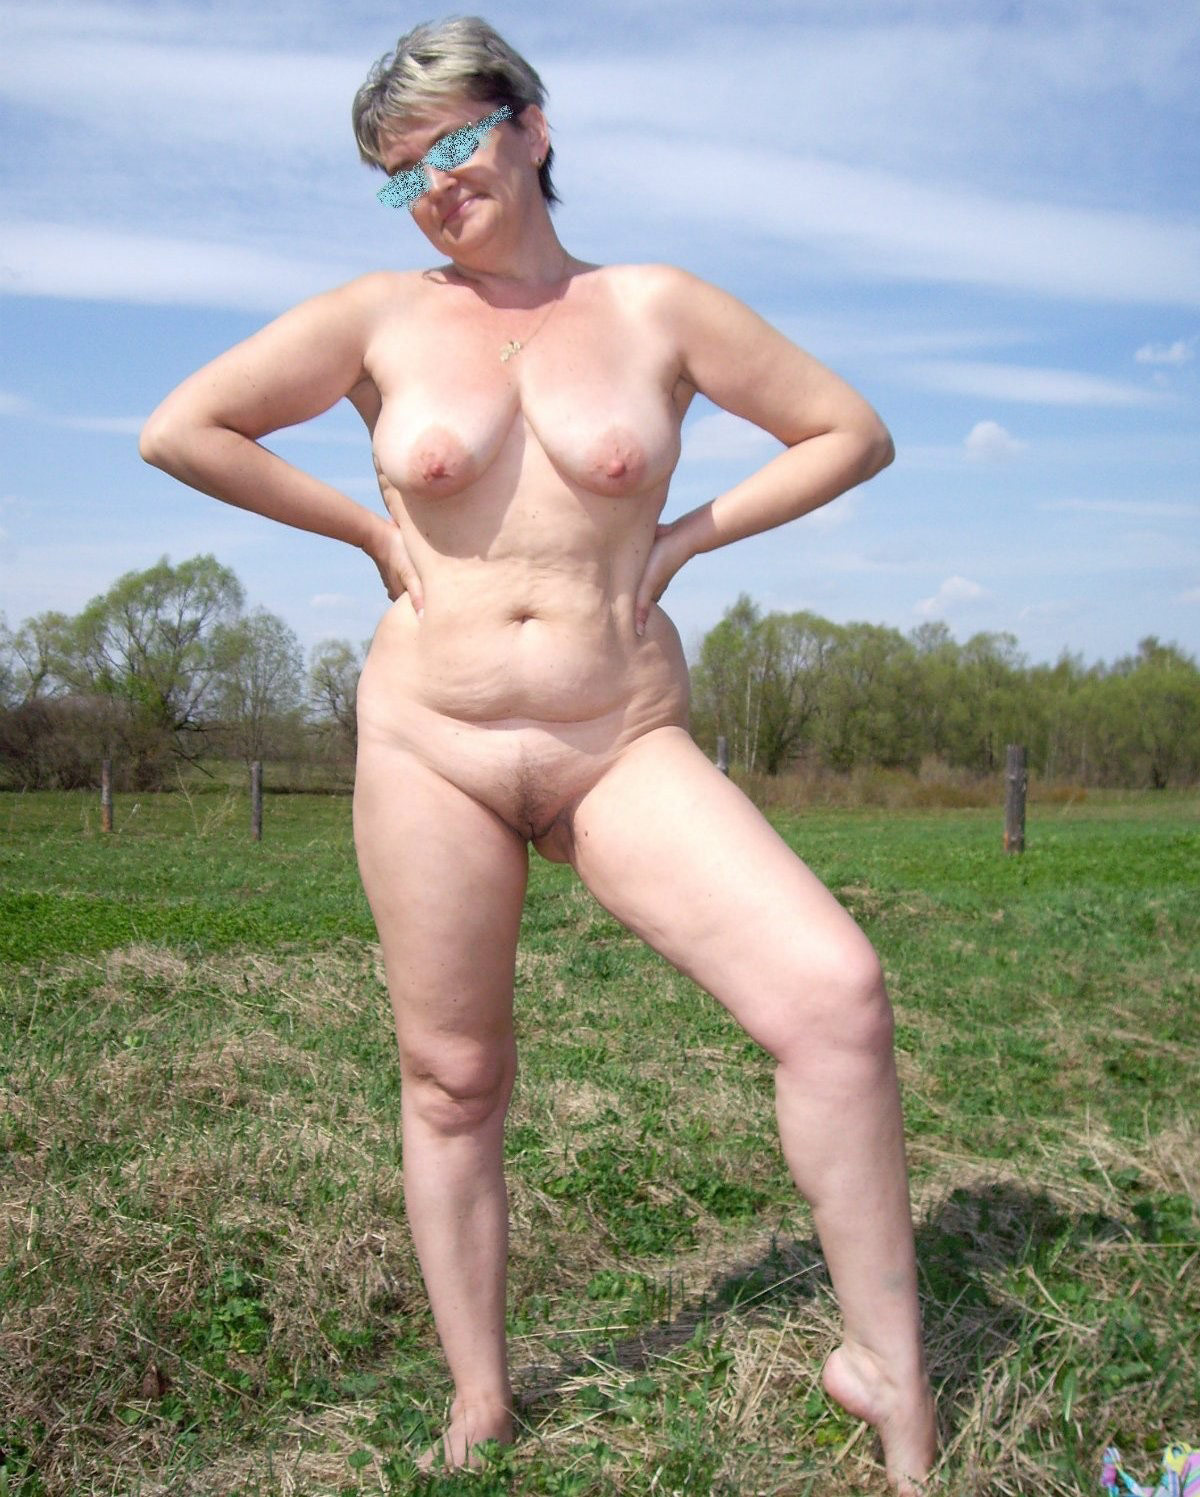 Completely naked in public parking lot in tampa florida 3